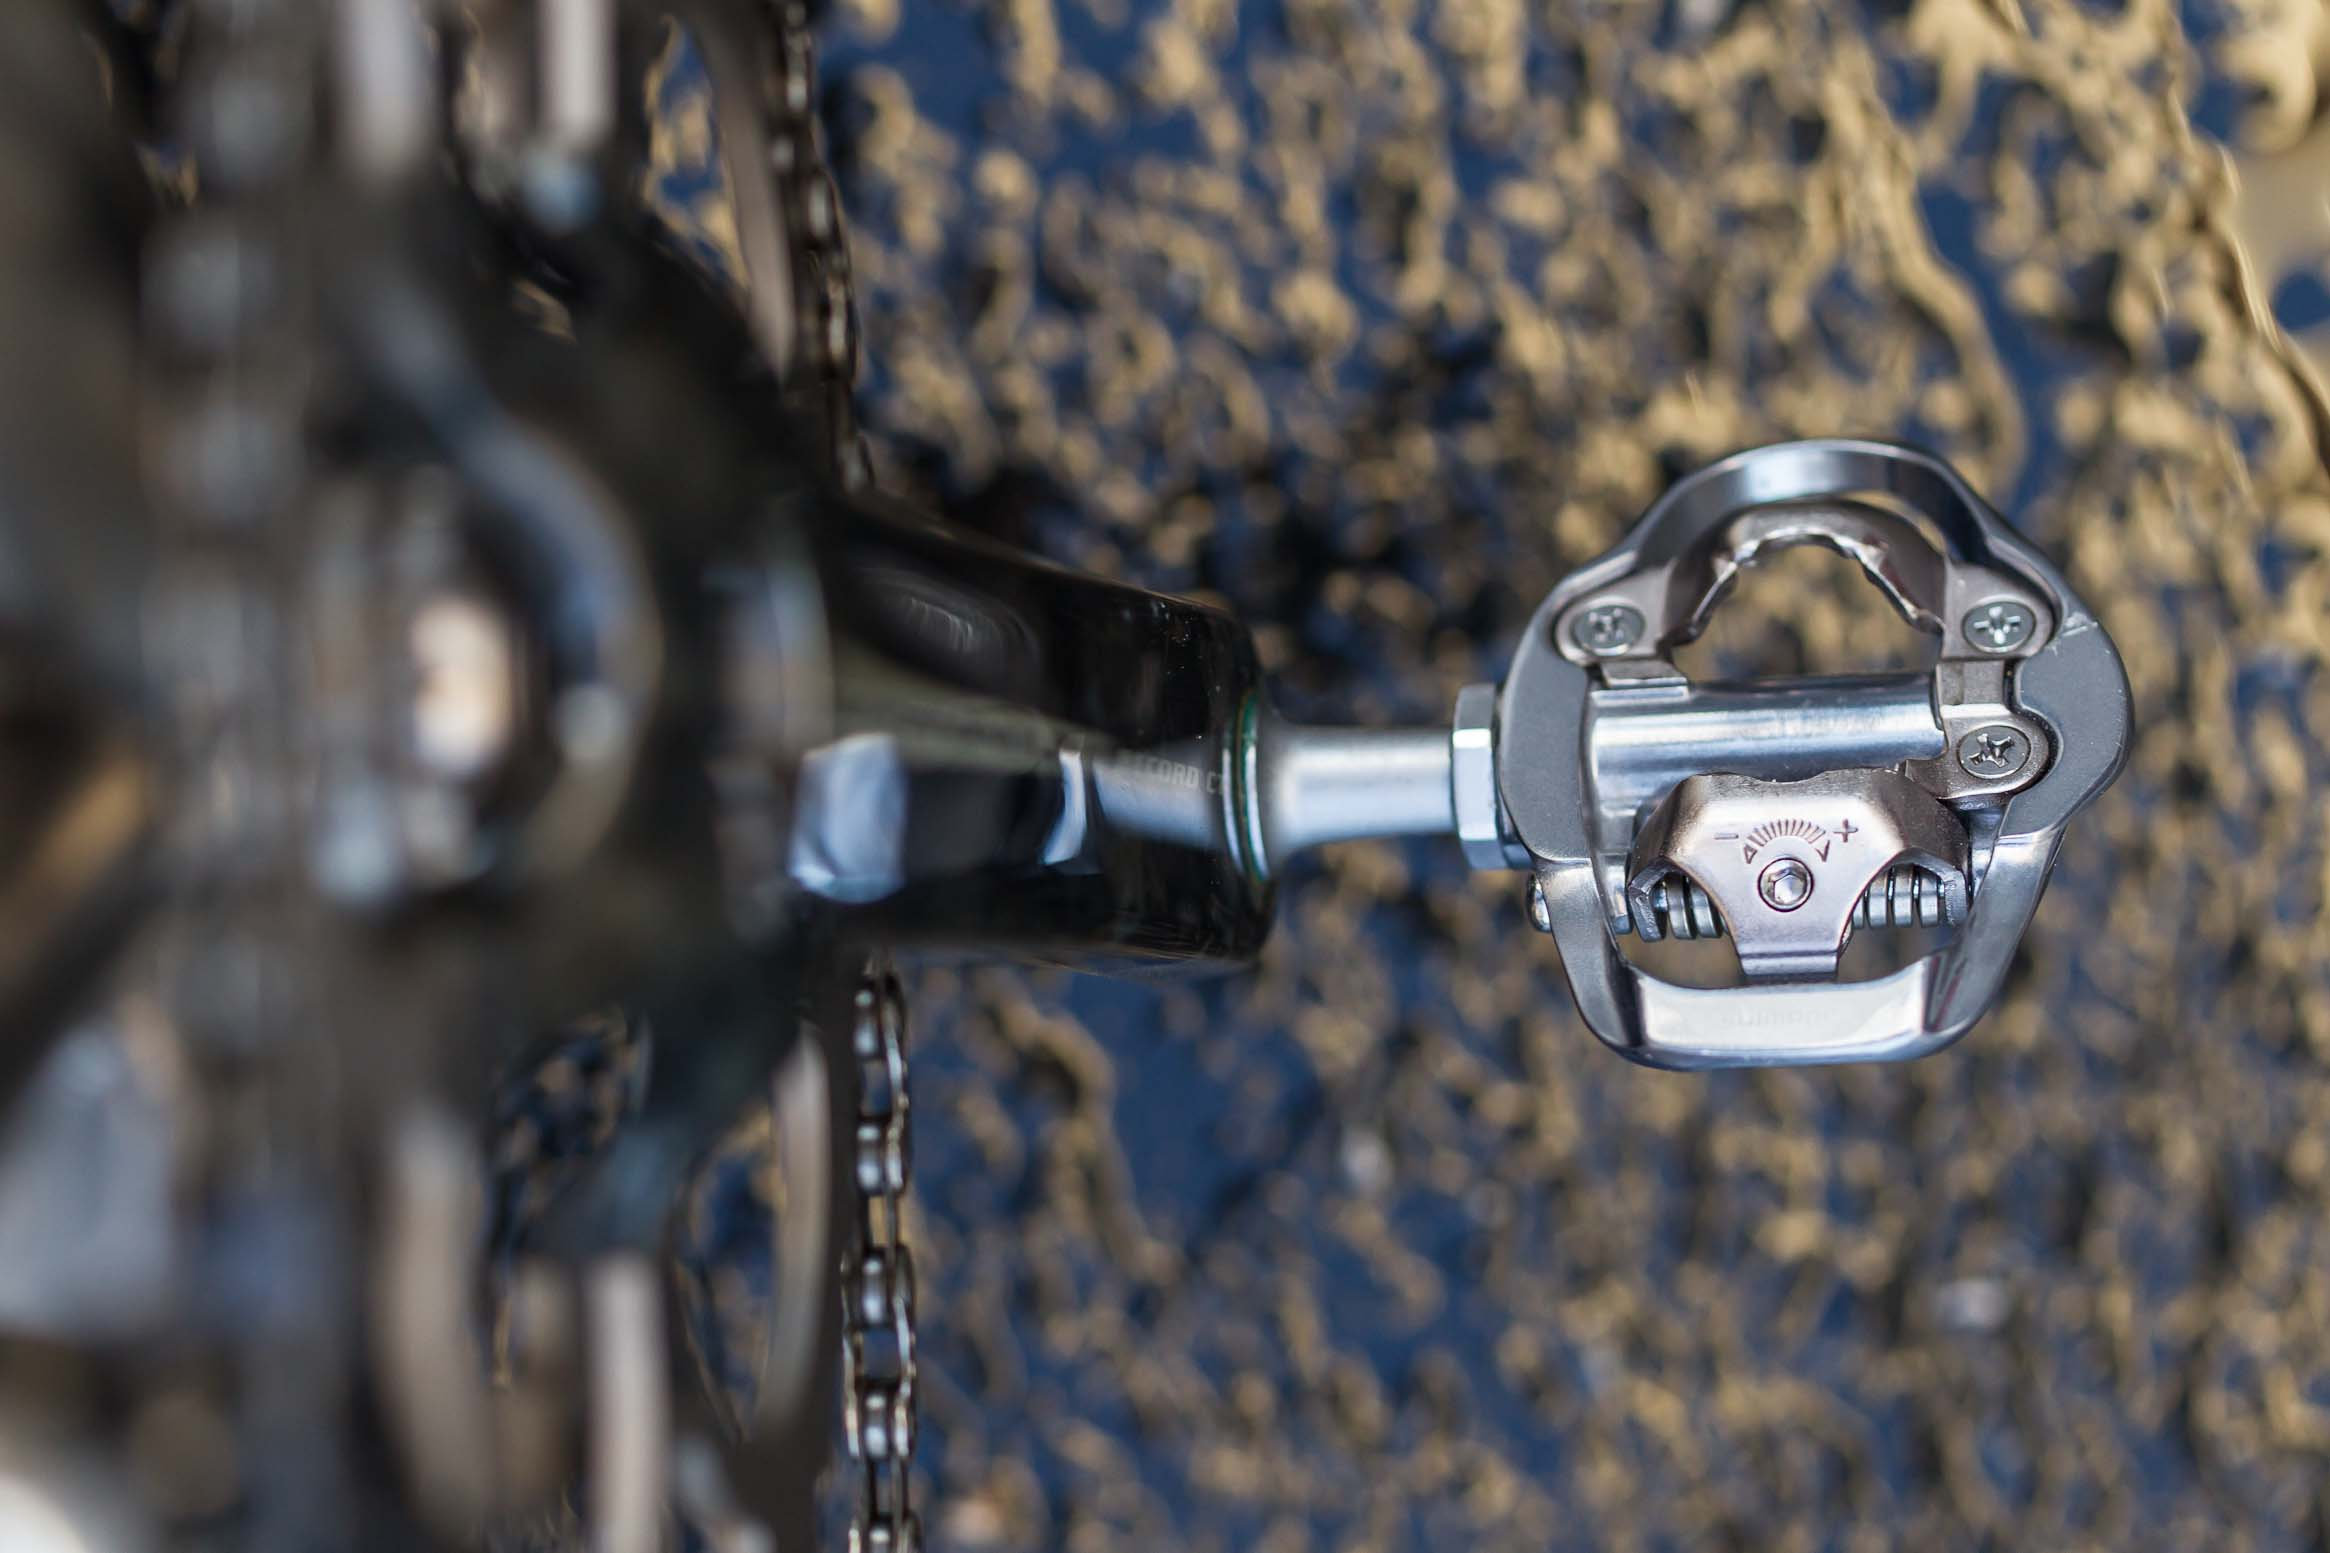 Shimano A600 Pedals